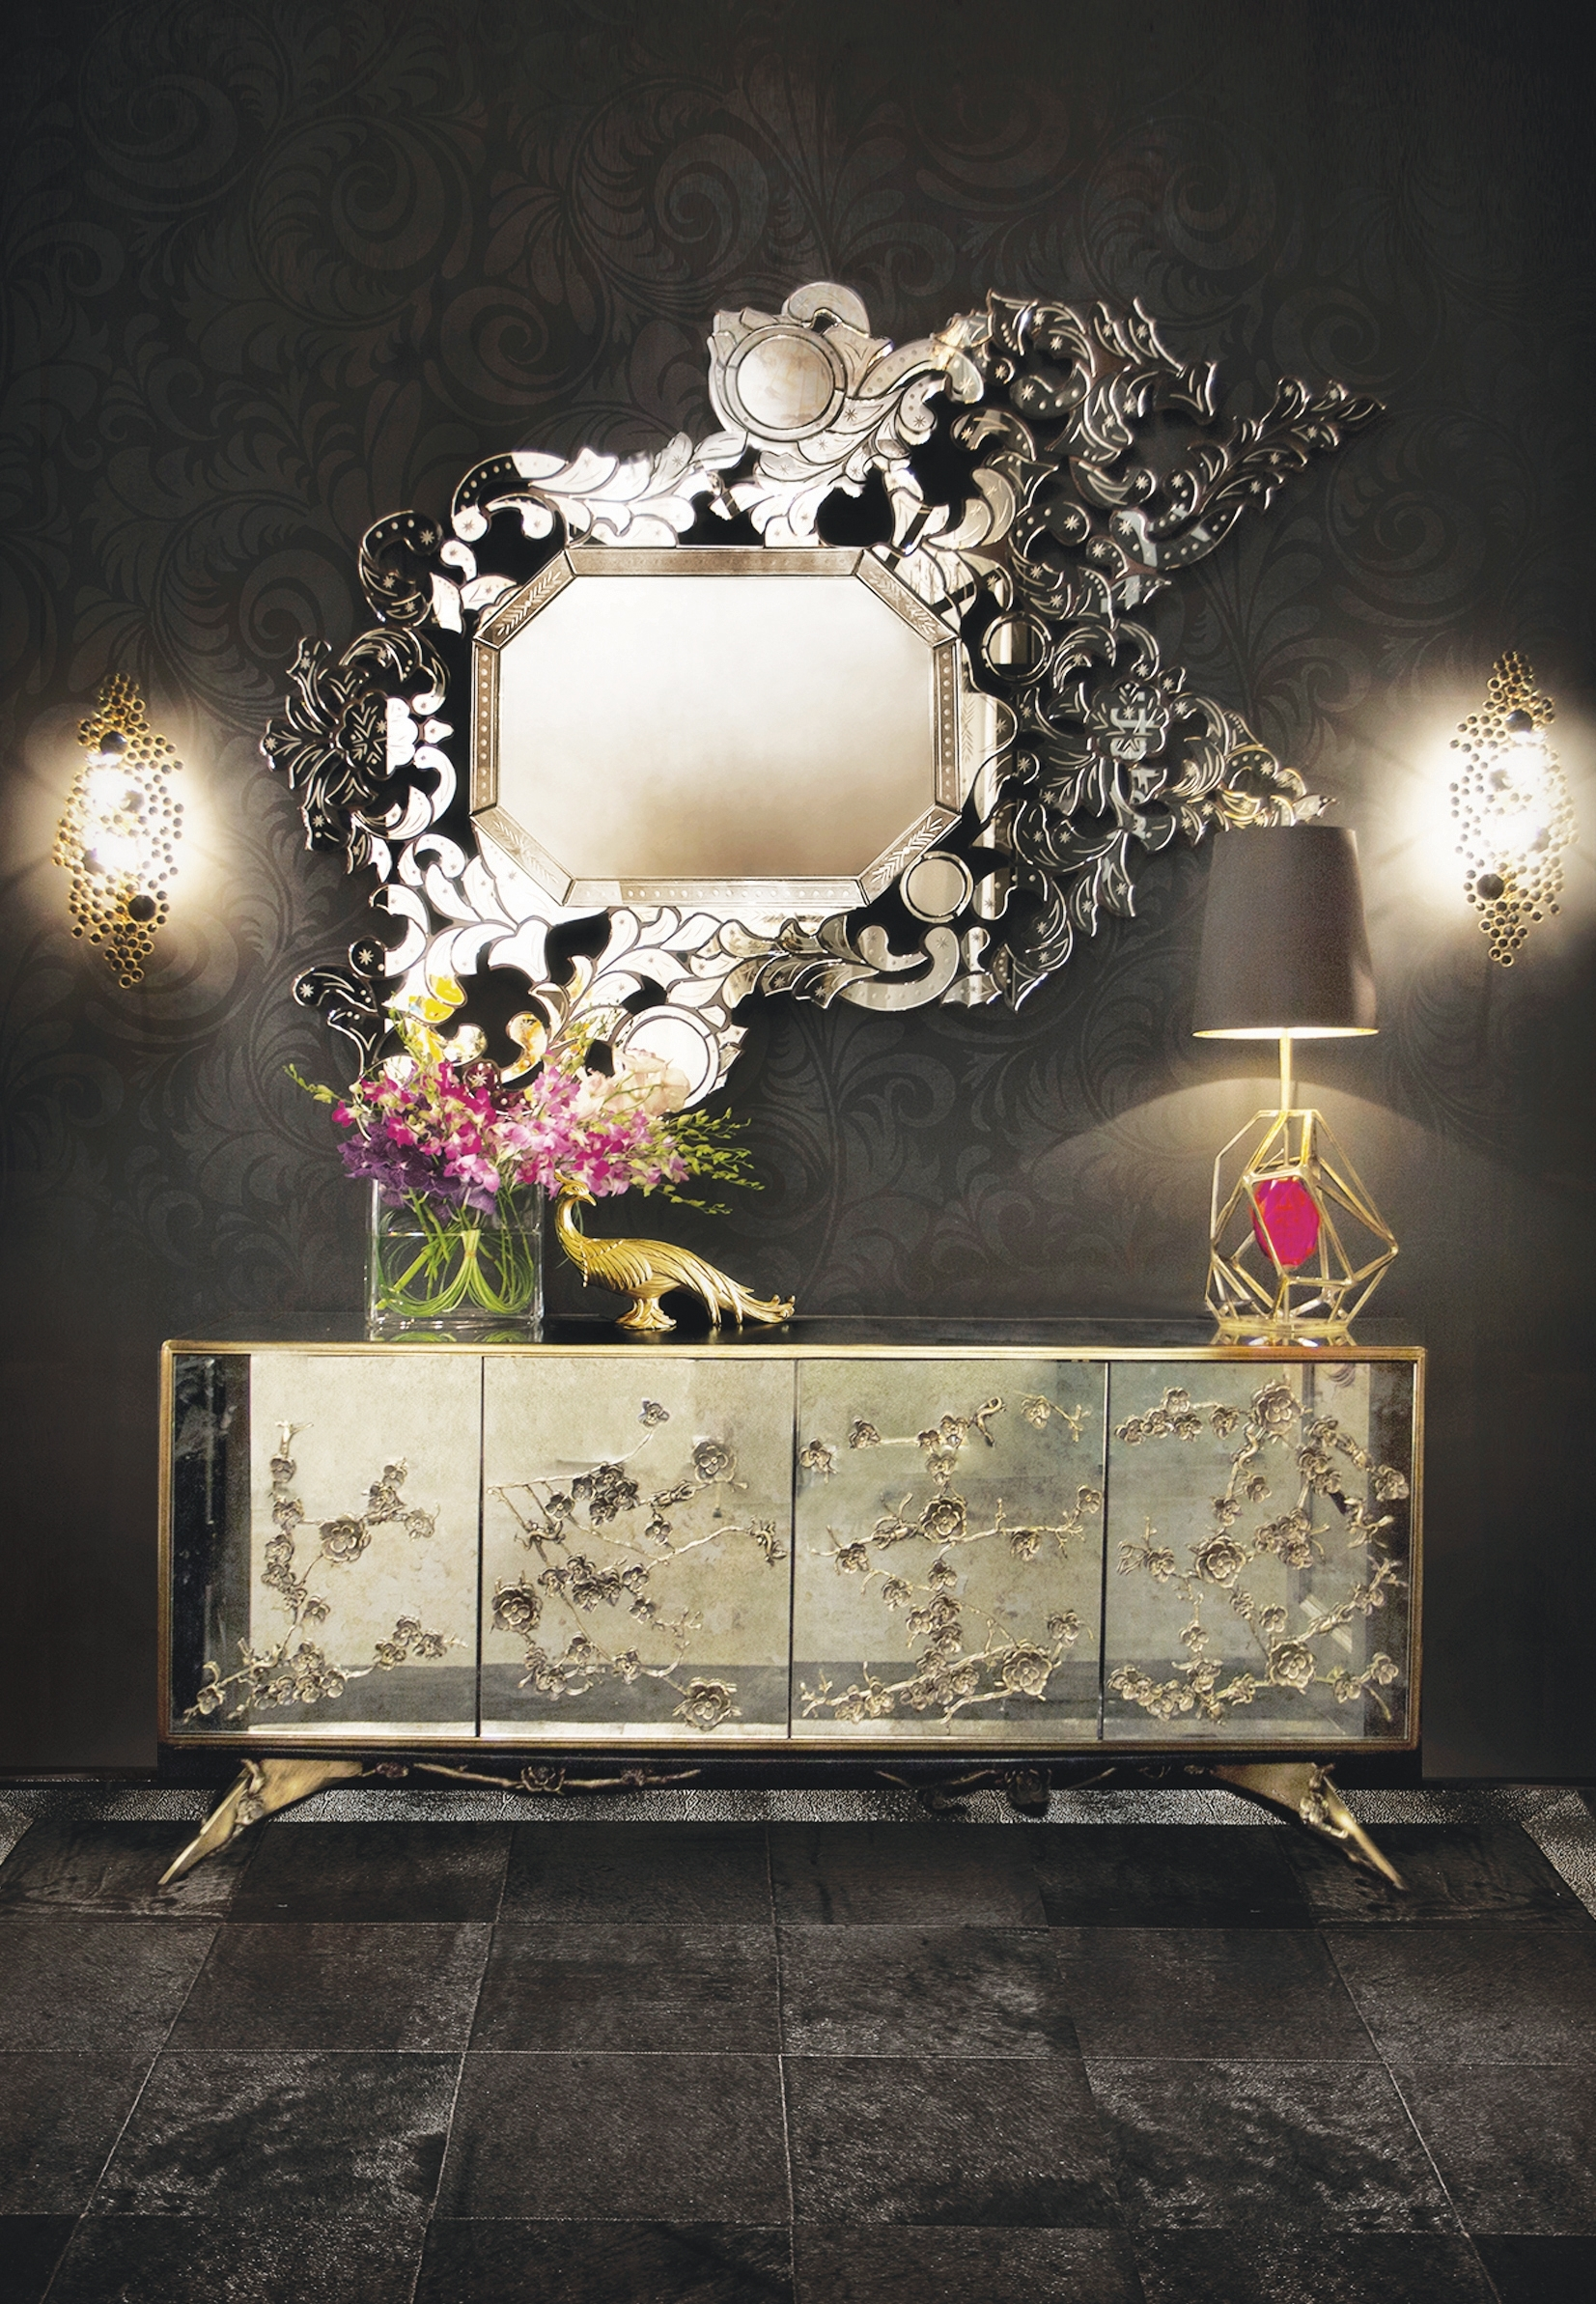 Top 10 Stunning Sideboards To Enhance Your Living Room Décor intended for Diamond Circle Sideboards (Image 29 of 30)